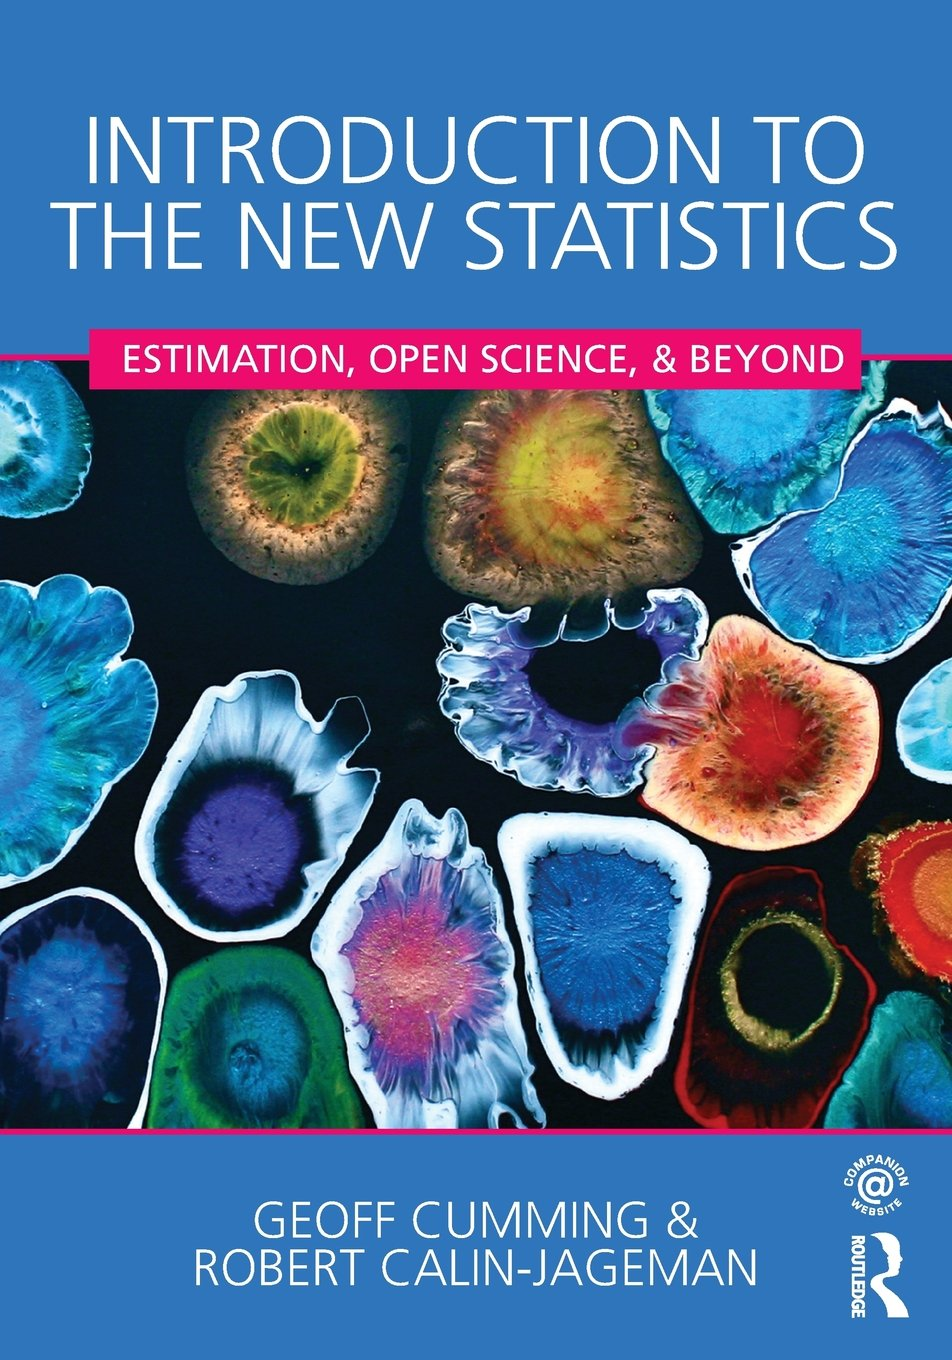 Introduction to the New Statistics: Estimation, Open Science, and Beyond:  Amazon.co.uk: Geoff Cumming, Robert Calin-Jageman: Books